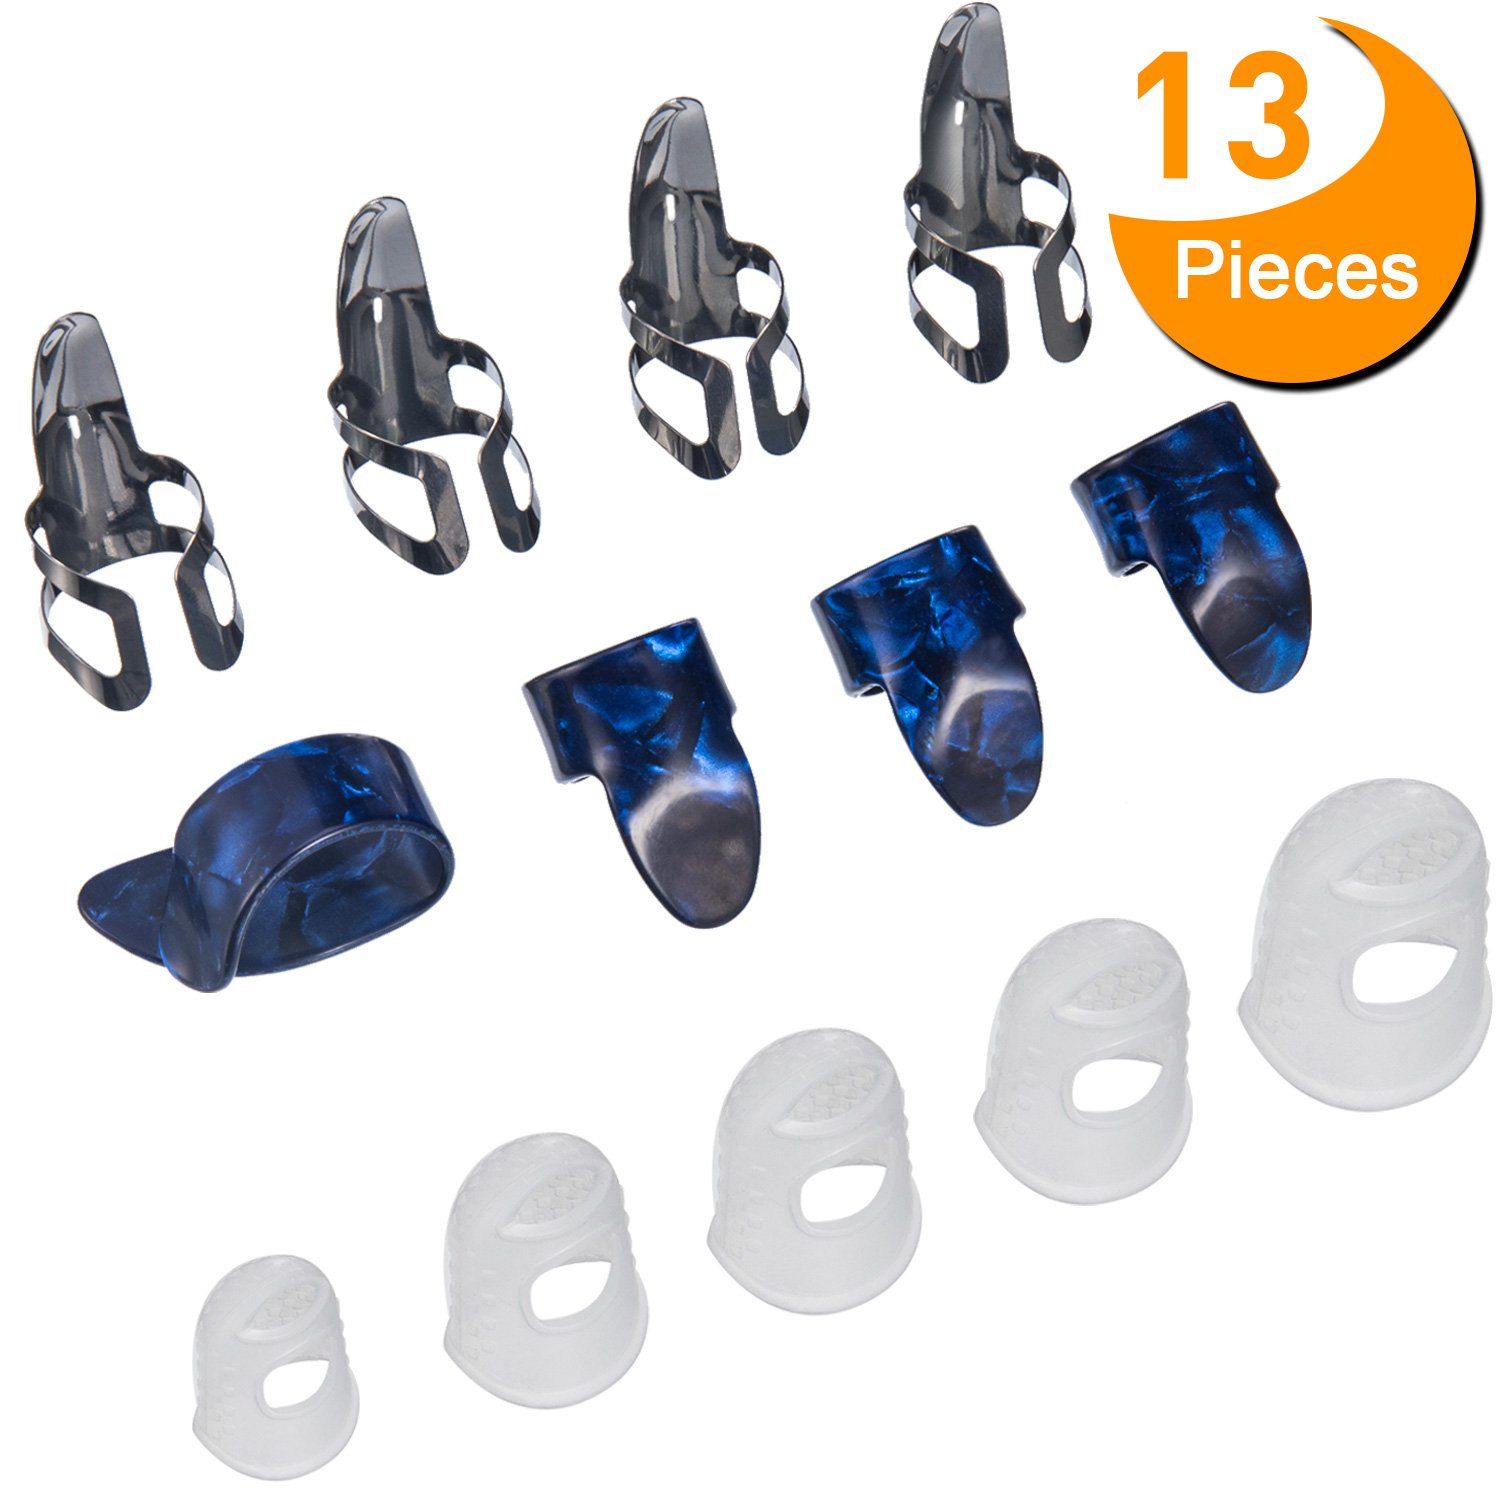 Guitar Starter Kit Includes 8 Pieces Guitar Thumb & Finger Picks (Metal and Blue Celluloid), 5 Pieces Clear Guitar Finger Protectors Canomo